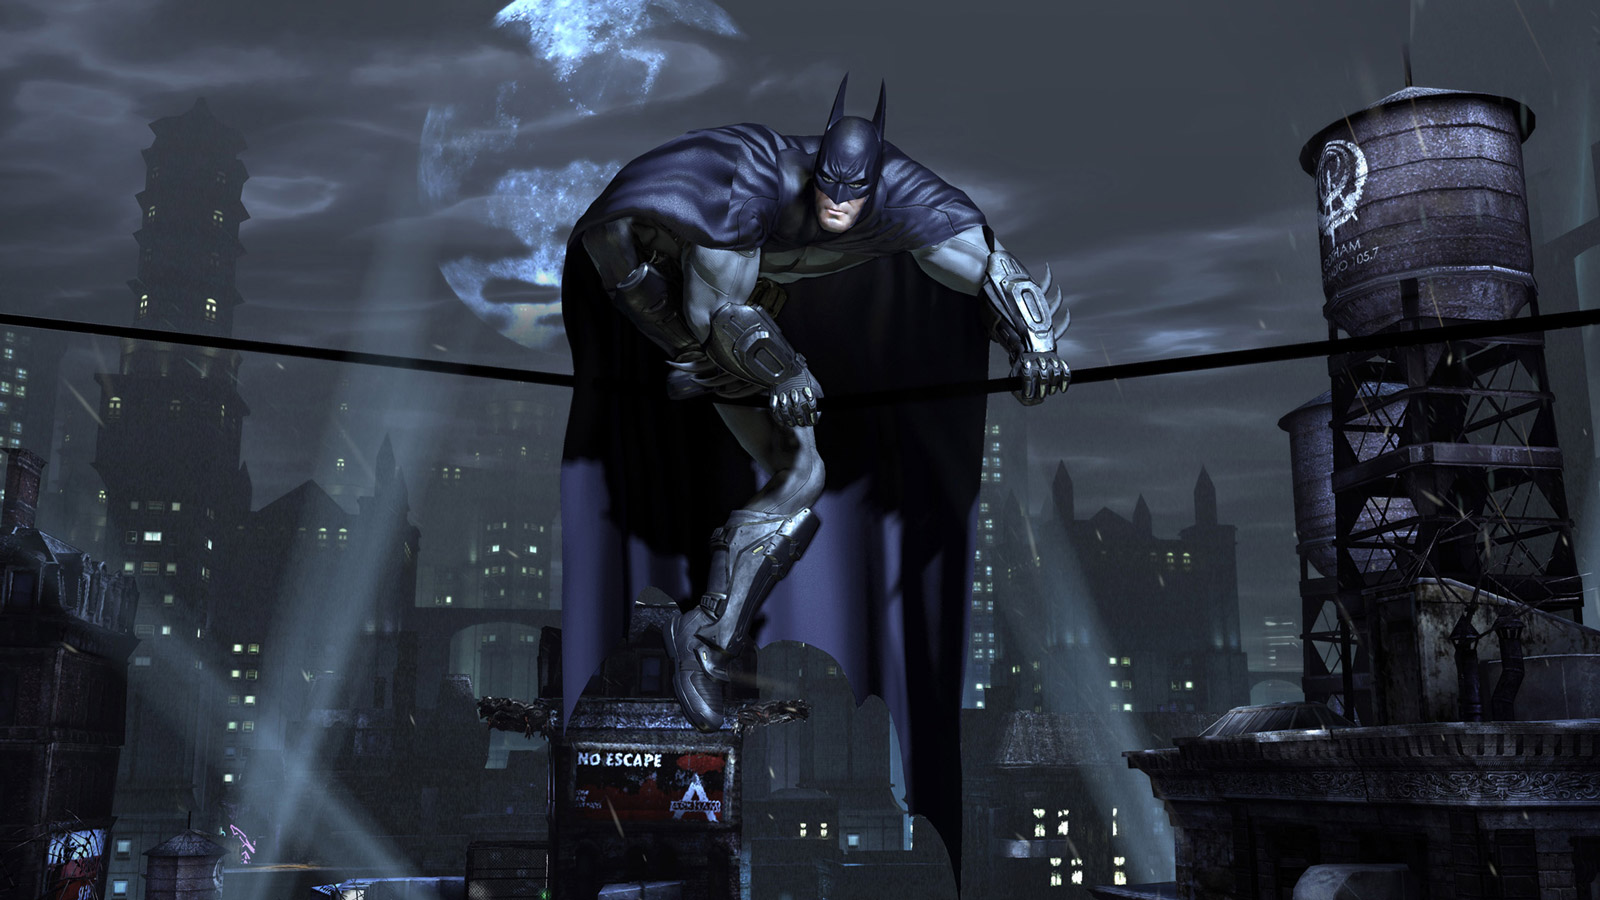 Free Batman: Arkham City Wallpaper in 1600x900